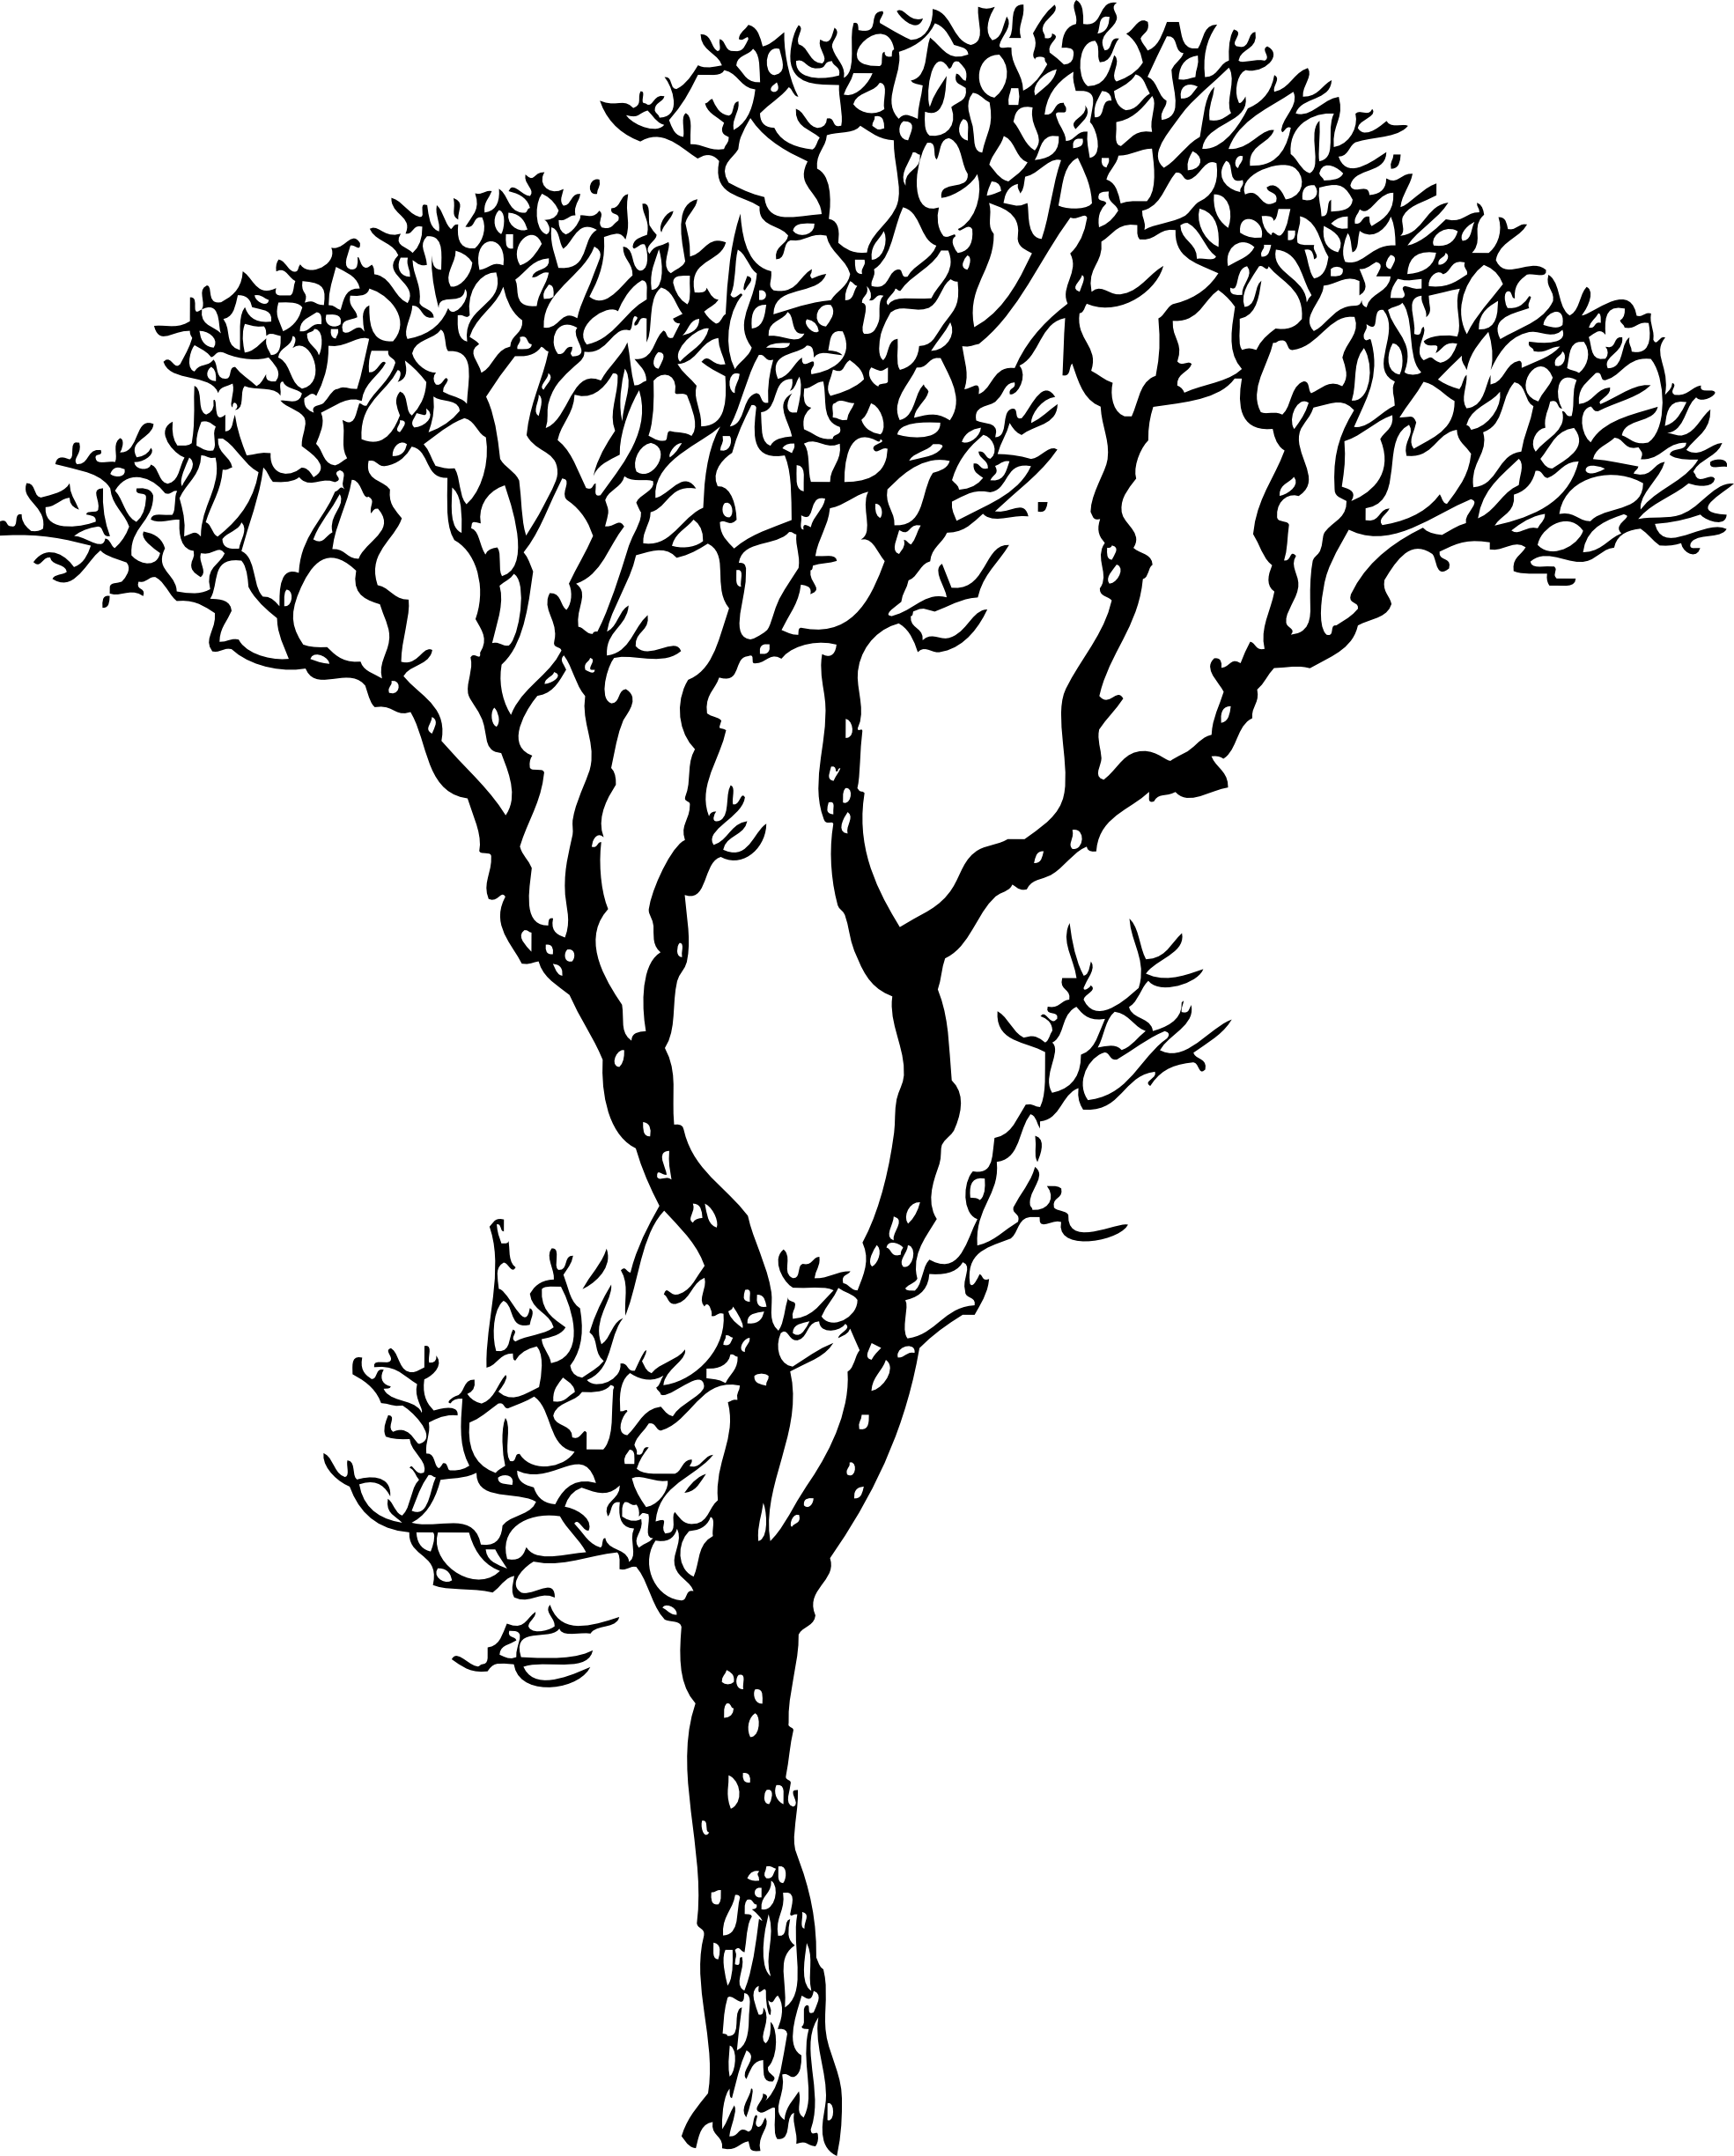 Tree service clipart jpg free Bare Tree Black White Line Art Coloring Book Colouring Letters ... jpg free